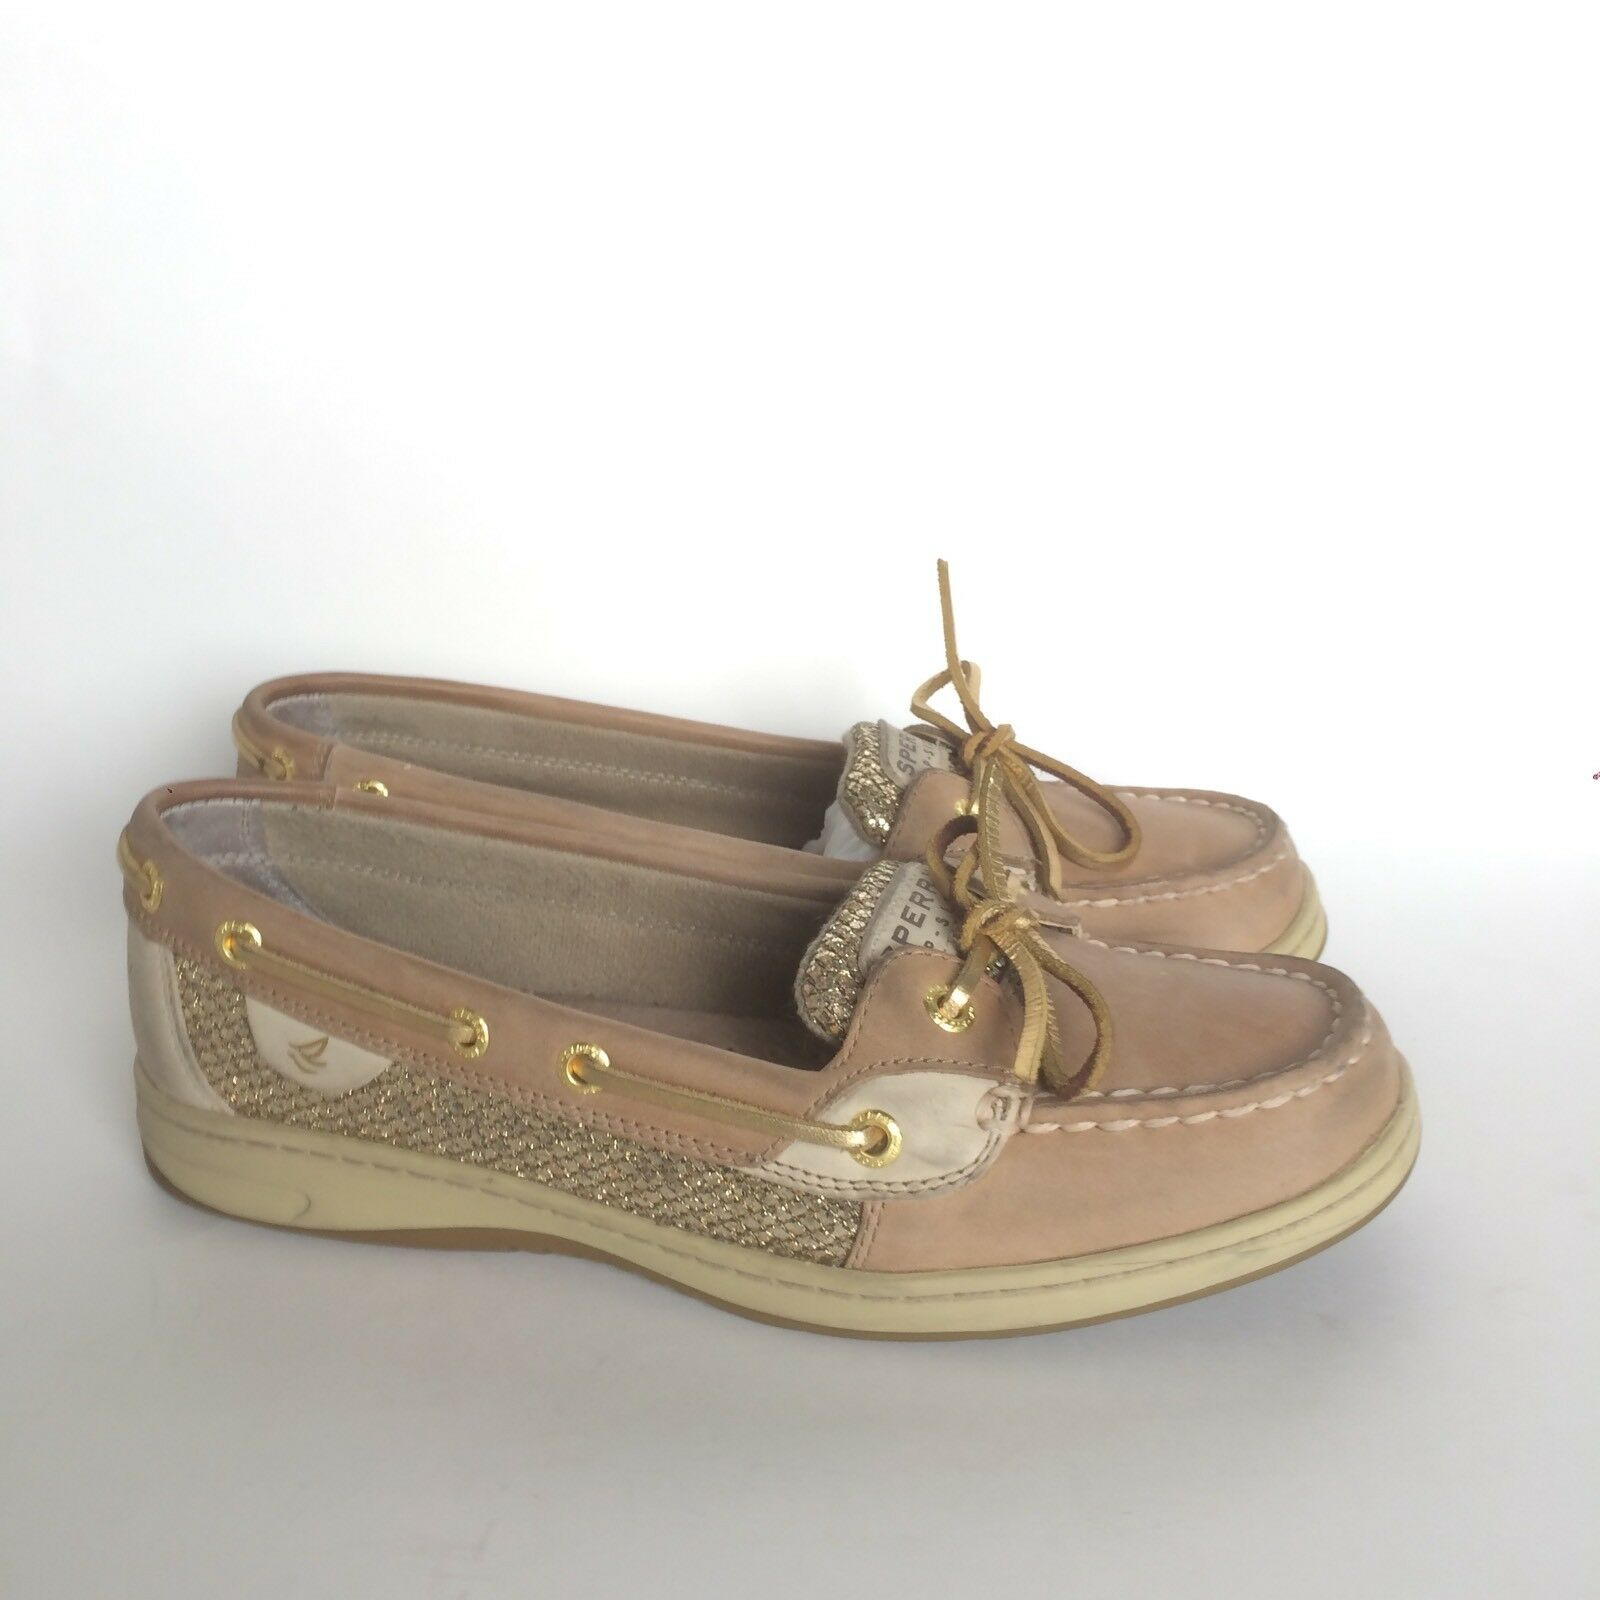 Sperry Top-Sider Bottes en Cuir Marron Chaussures Bateau Taille 7.5 or Sparkle Slip Ons